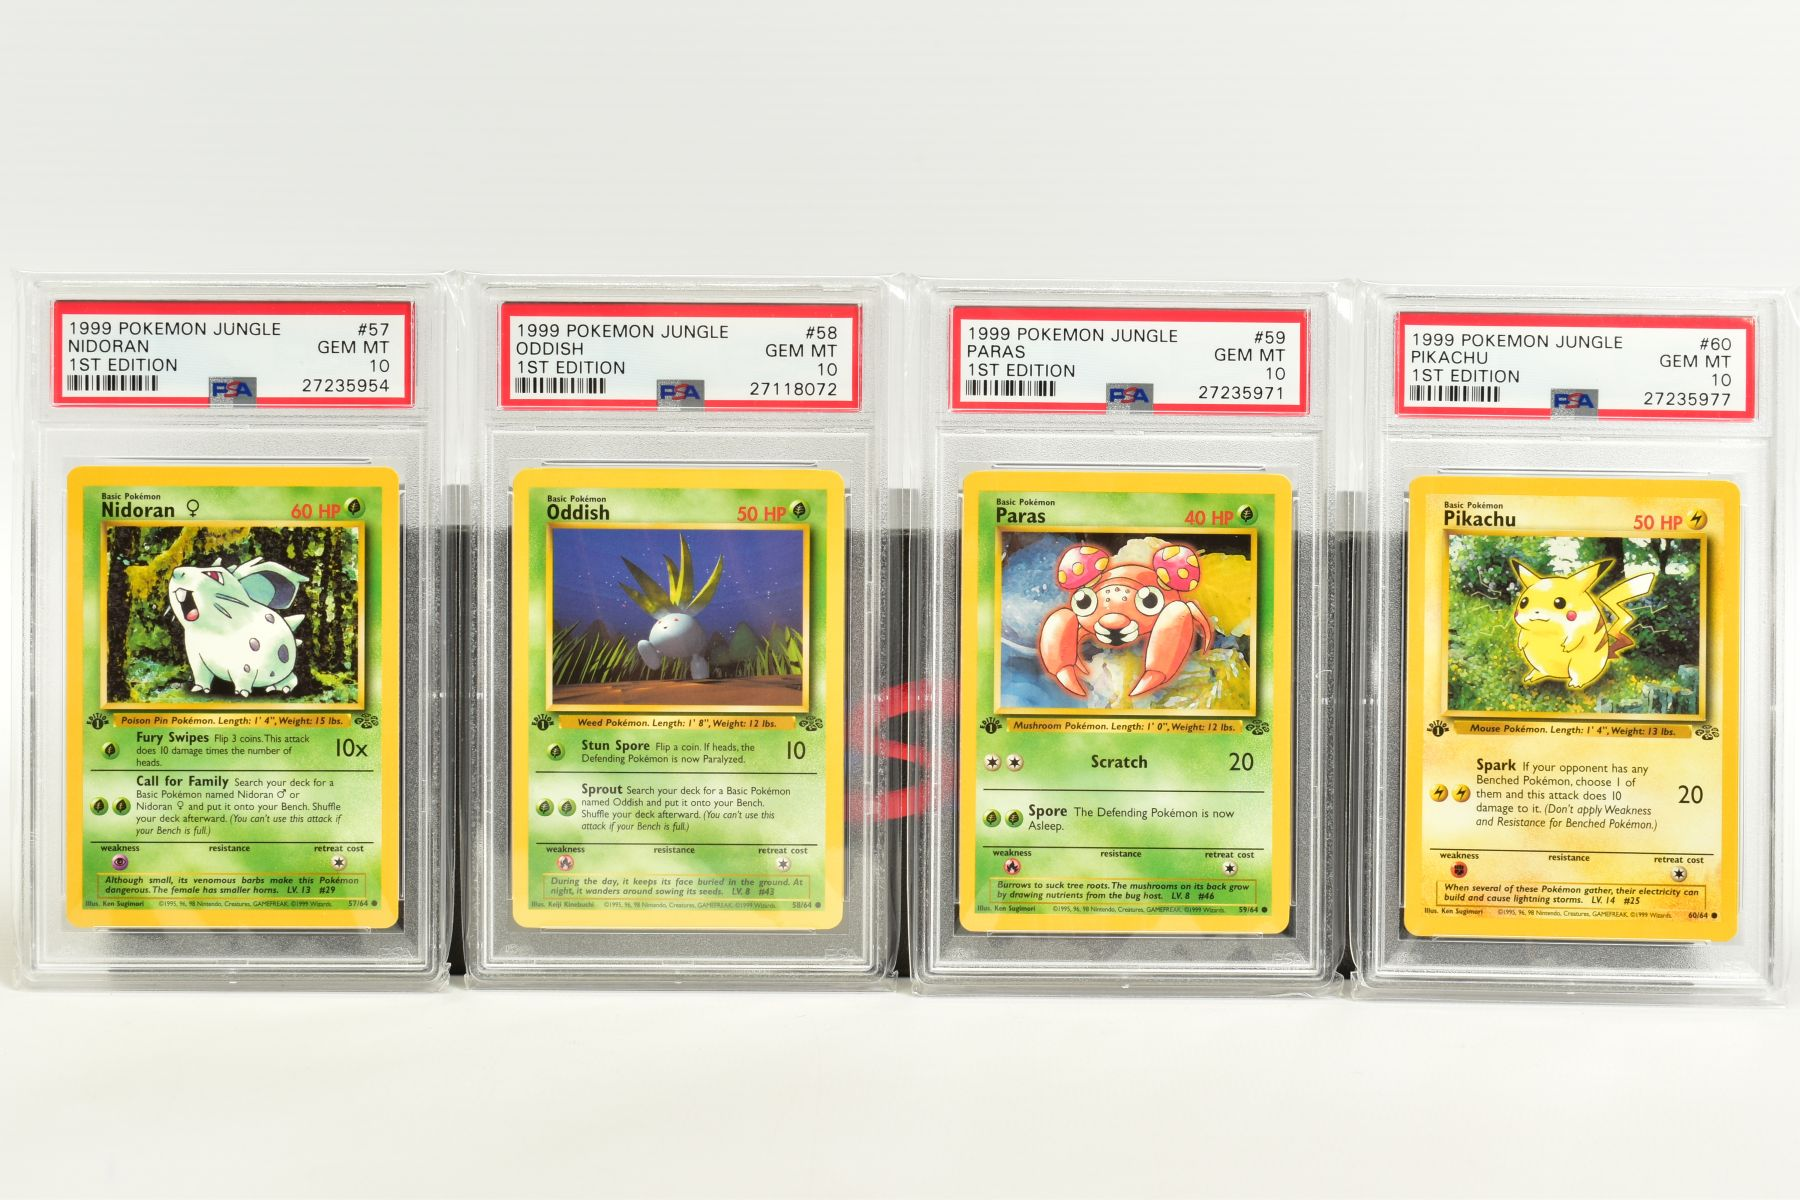 A QUANTITY OF PSA GRADED POKEMON 1ST EDITION JUNGLE SET CARDS, all are graded GEM MINT 10 and are - Image 12 of 13